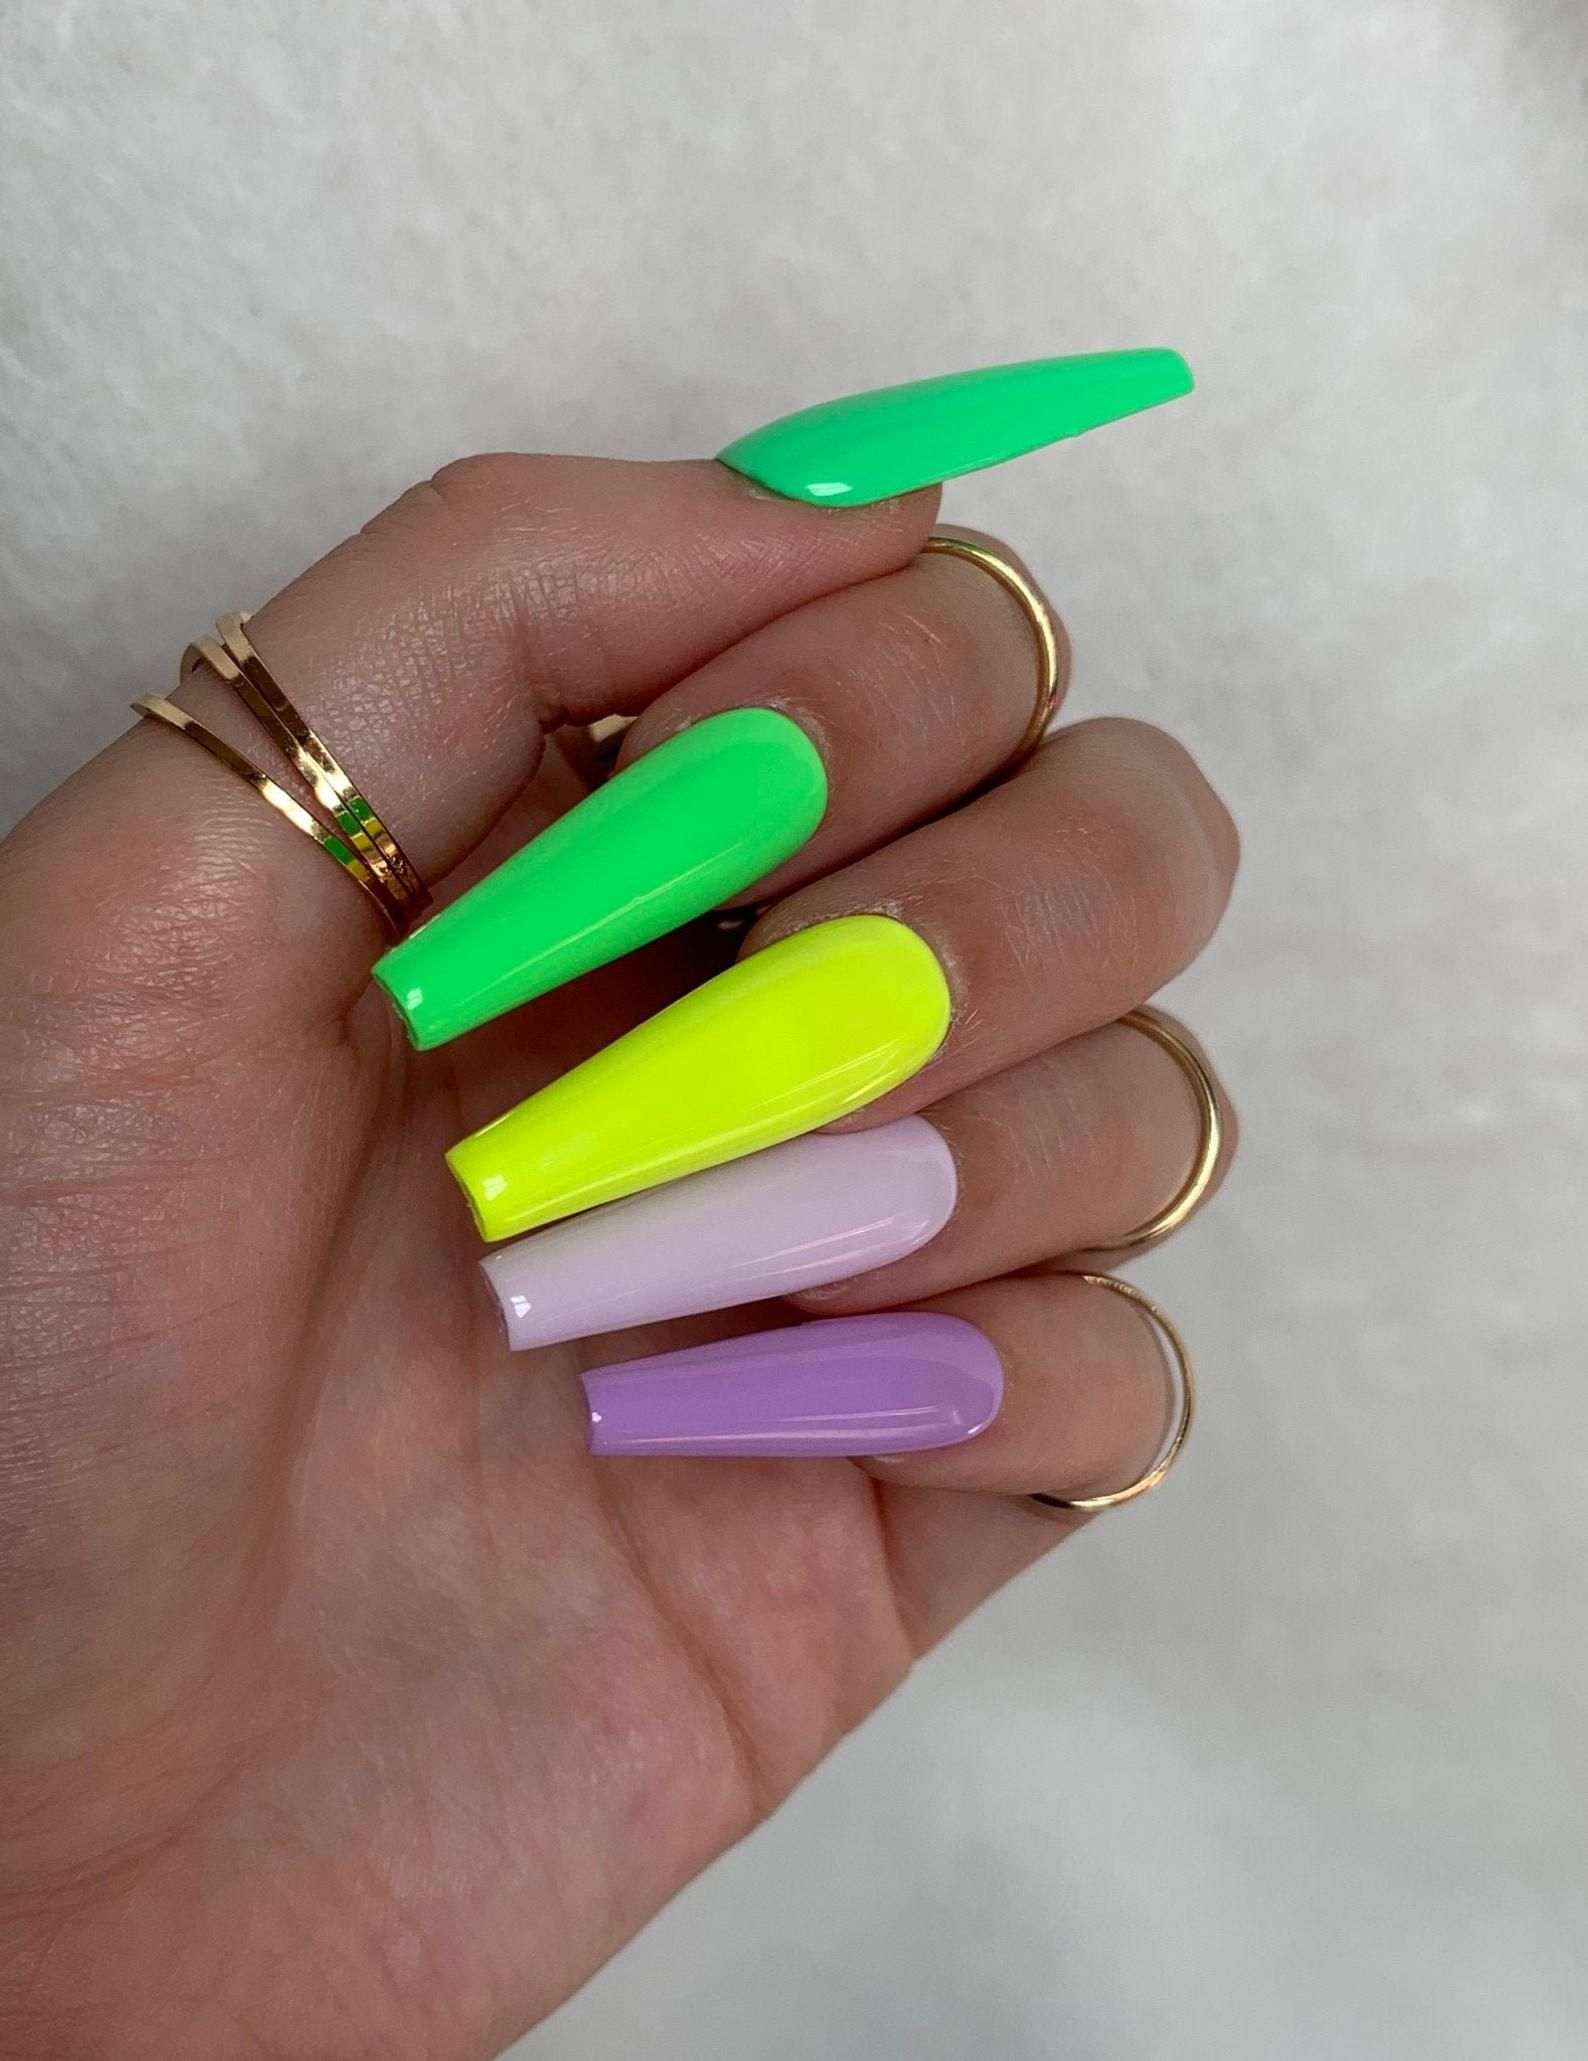 All That Neon Green Yellow Purple Press On Nails Bright Etsy In 2020 Neon Acrylic Nails Green Acrylic Nails Bright Nails Neon